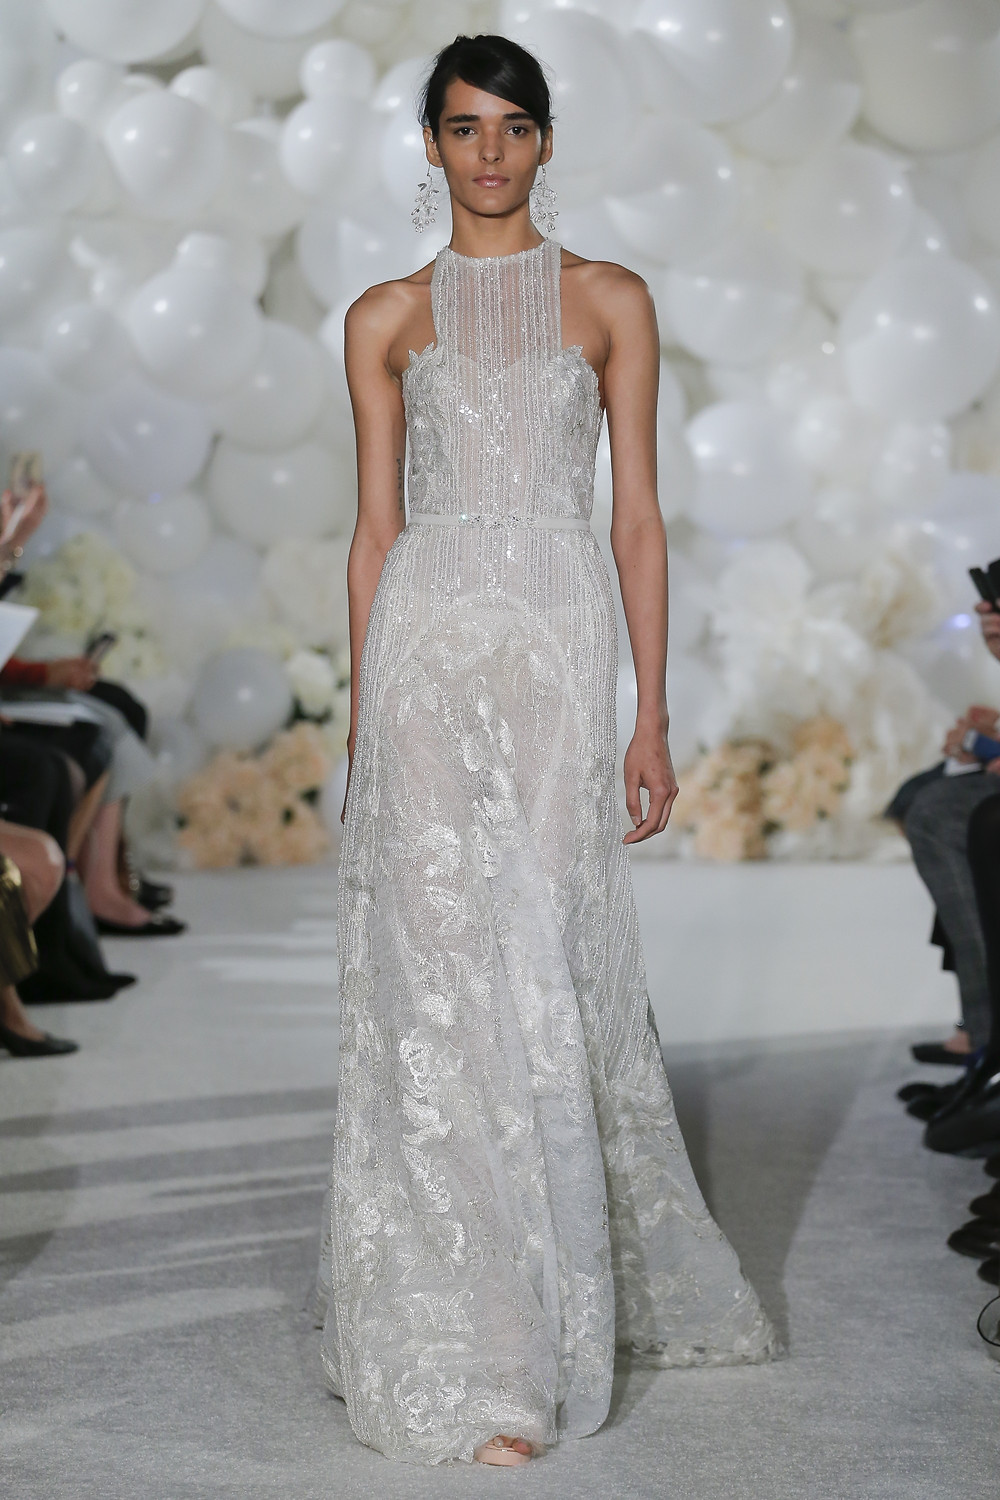 Weddinspired | 35+ Stylish Halterneck Wedding Dresses | Mira Zwillinger - From the Over the Rainbow S/S 2018 collection